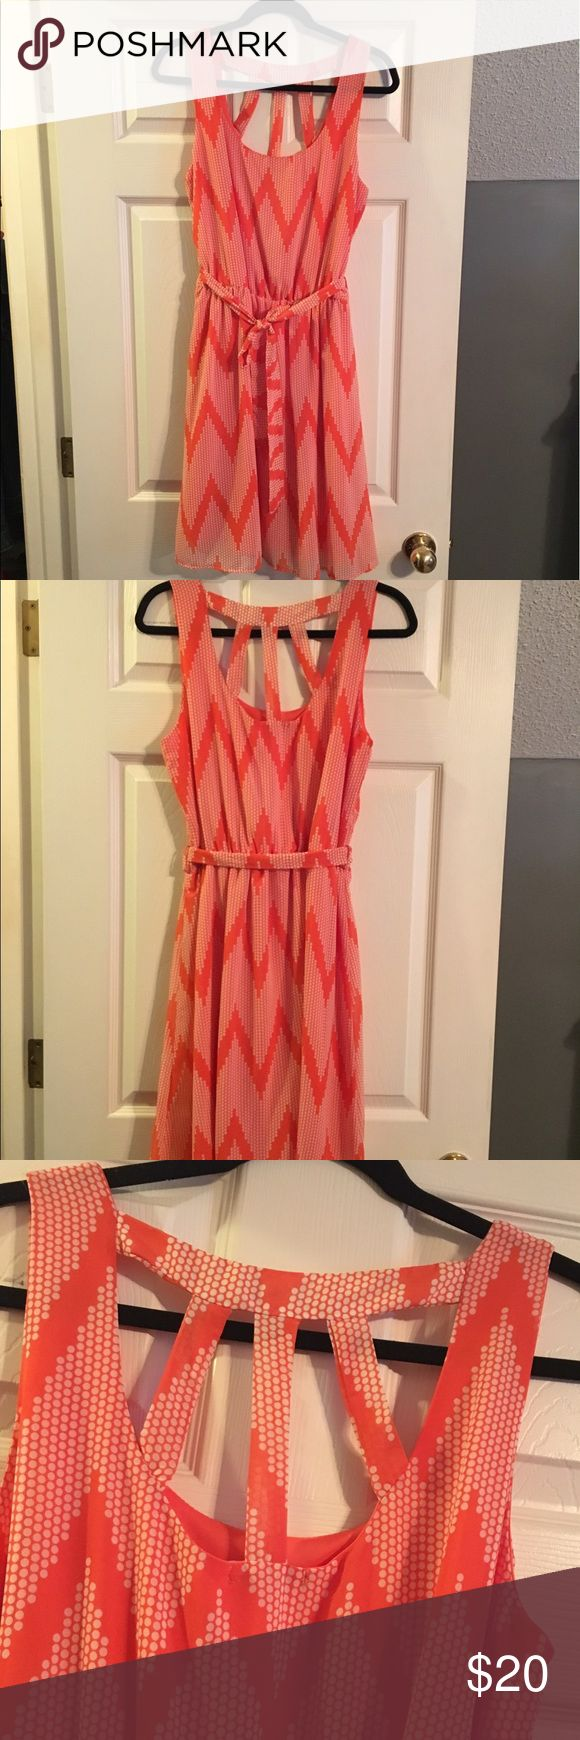 Orange Chevron Halo Dress Orange Chevron Halo Dress- lightly worn Size M adorable cut out back detail Halo Dresses